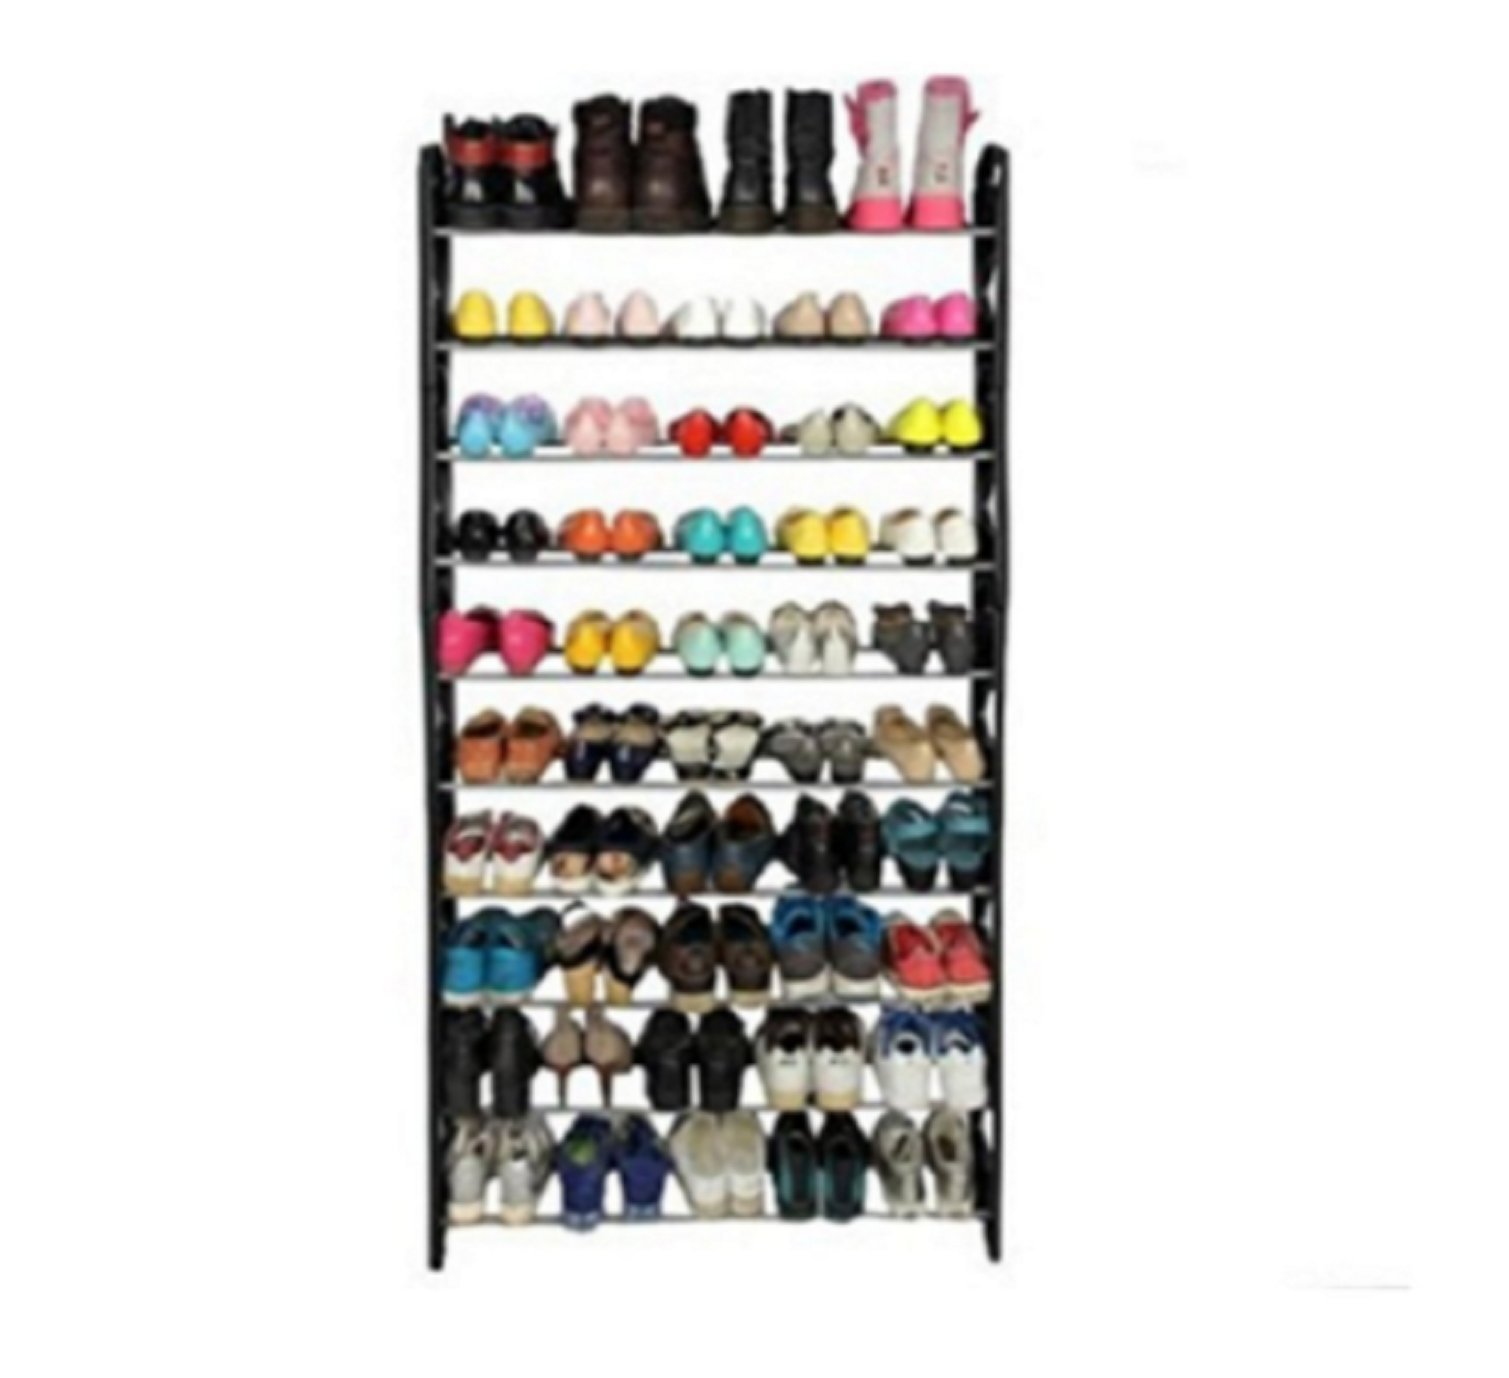 USA Premium Store 50 Pair 10 Tier Shoe Tower Rack Organizer Space Saving Shoe Rack Stainless Steel